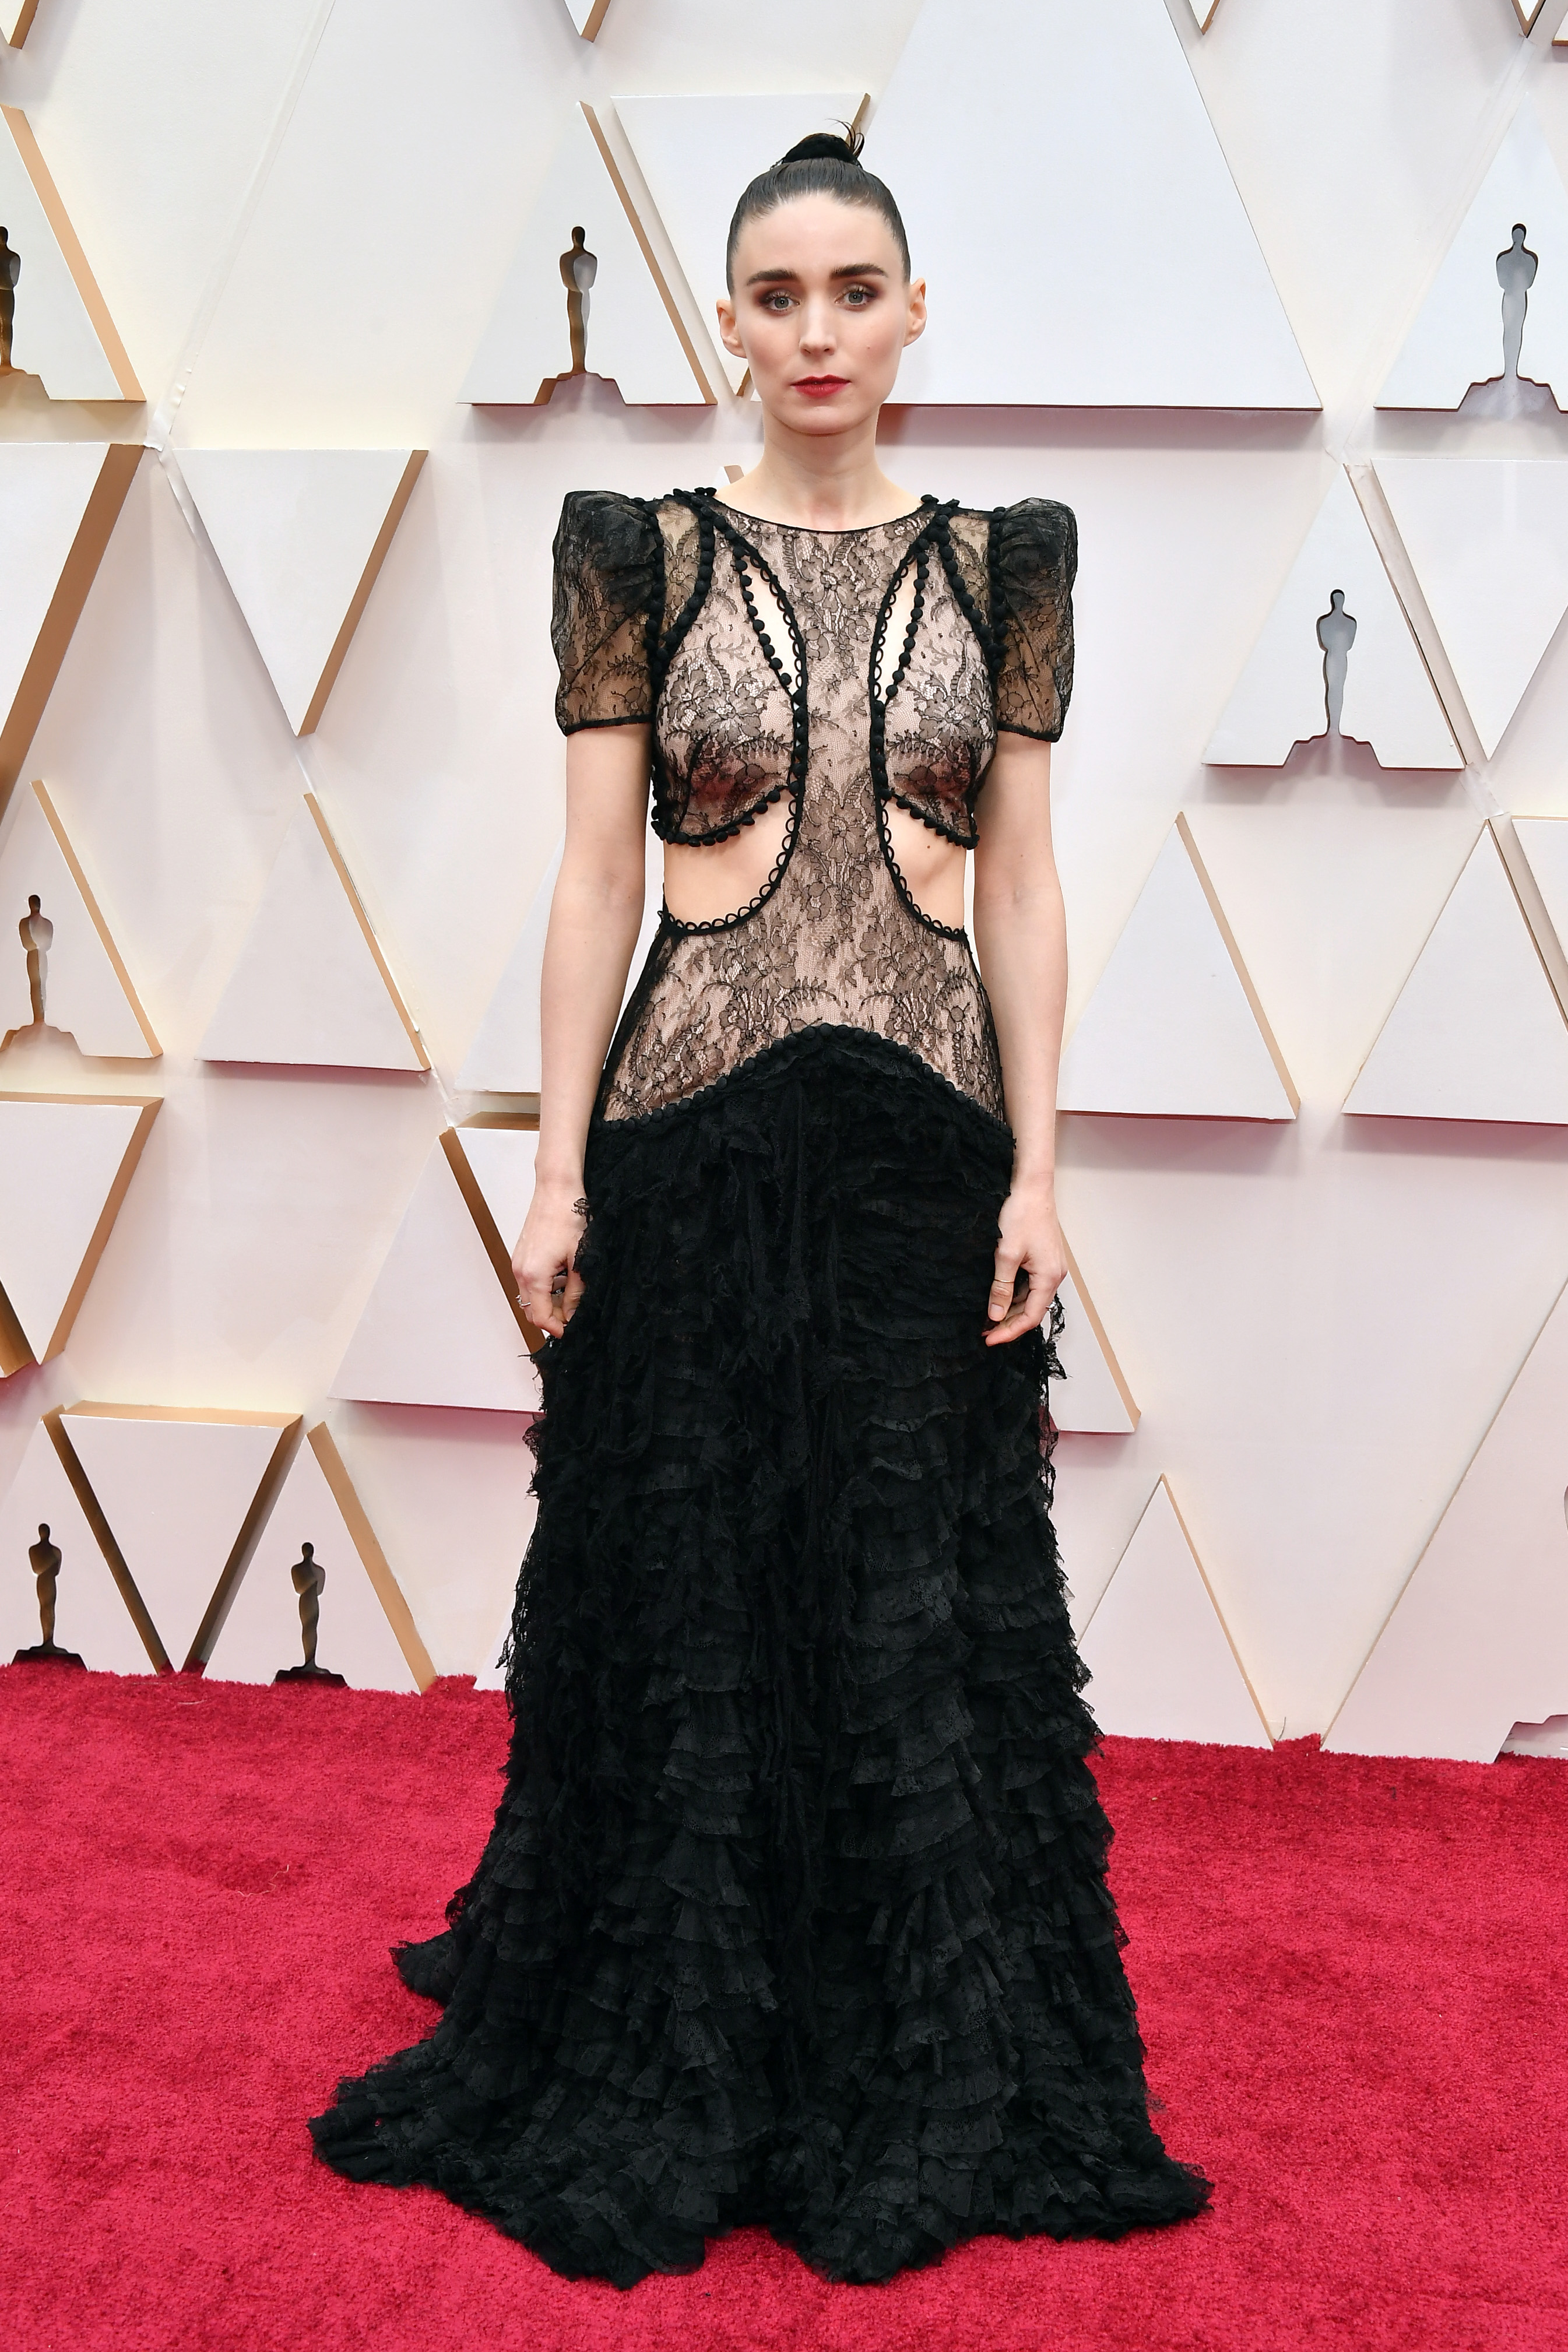 HOLLYWOOD, CALIFORNIA - FEBRUARY 09: Rooney Mara attends the 92nd Annual Academy Awards at Hollywood and Highland on February 09, 2020 in Hollywood, California. (Photo by Amy Sussman/Getty Images)